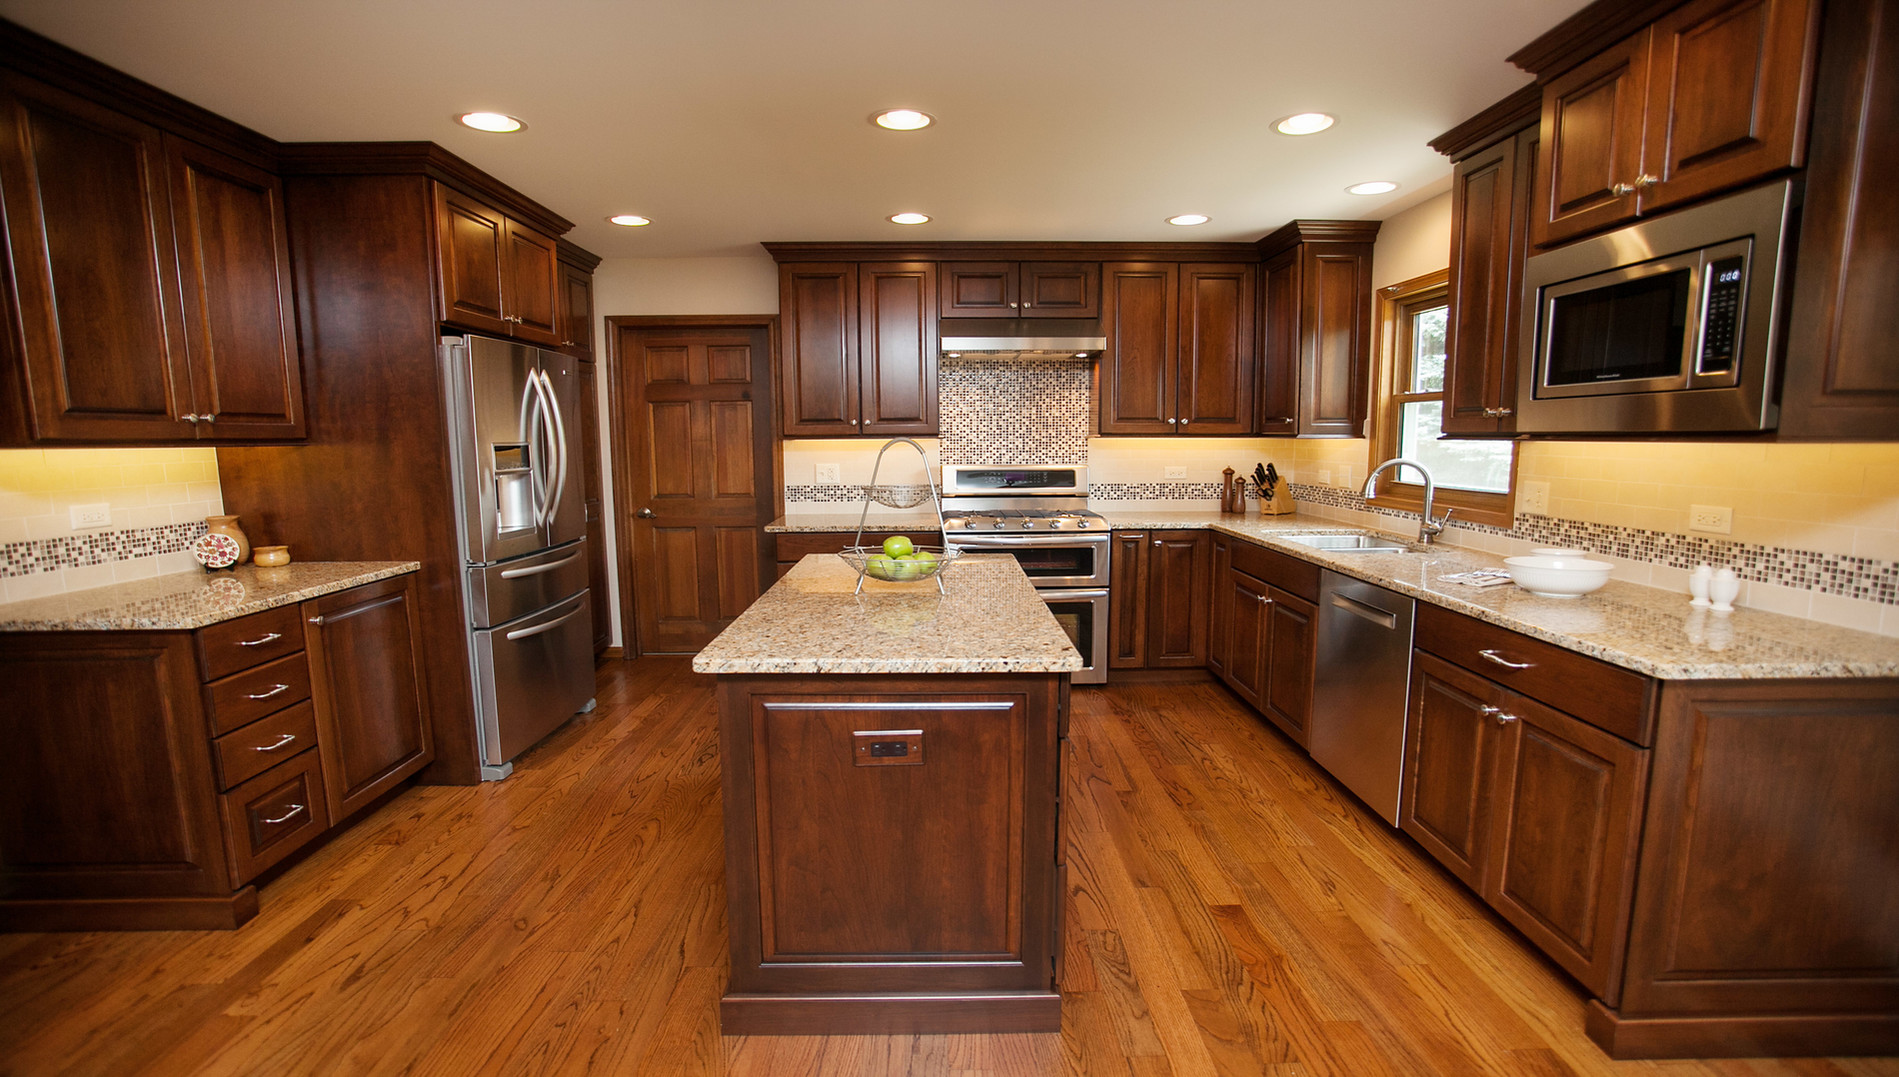 Tempting Traditional River Oak Cabinetry & Design